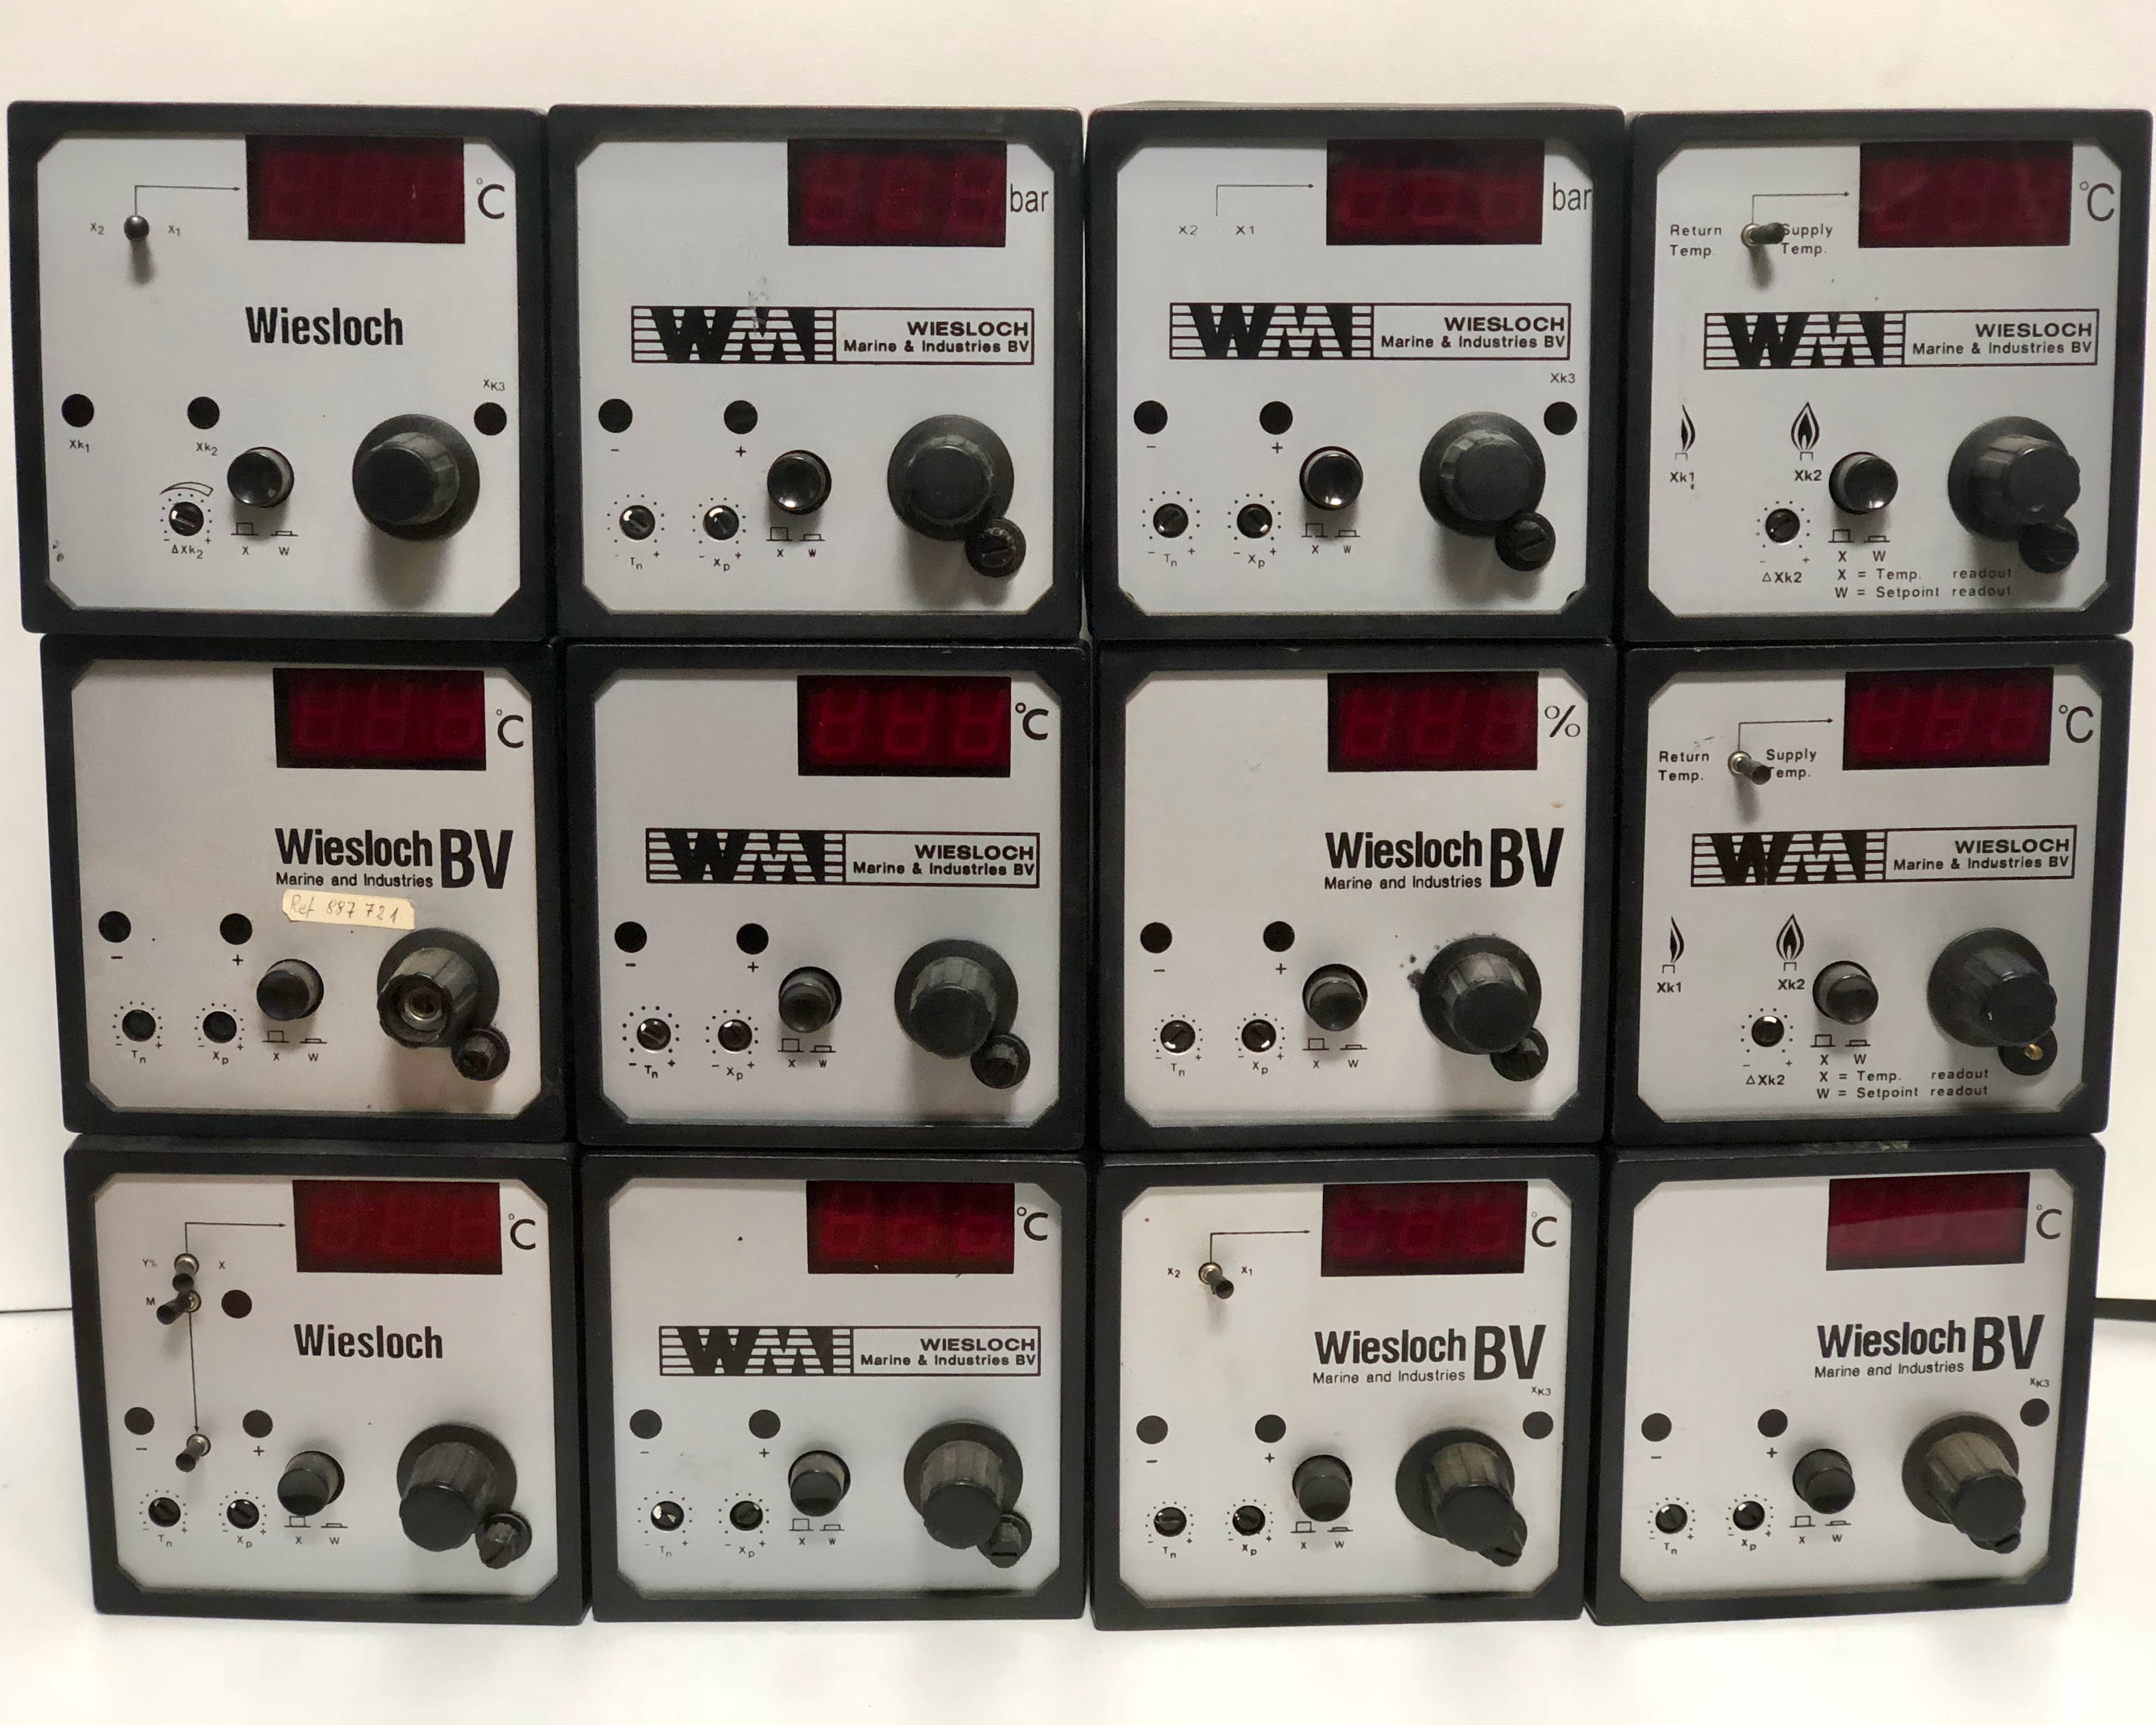 Wiesloch Aalborg electric controllers